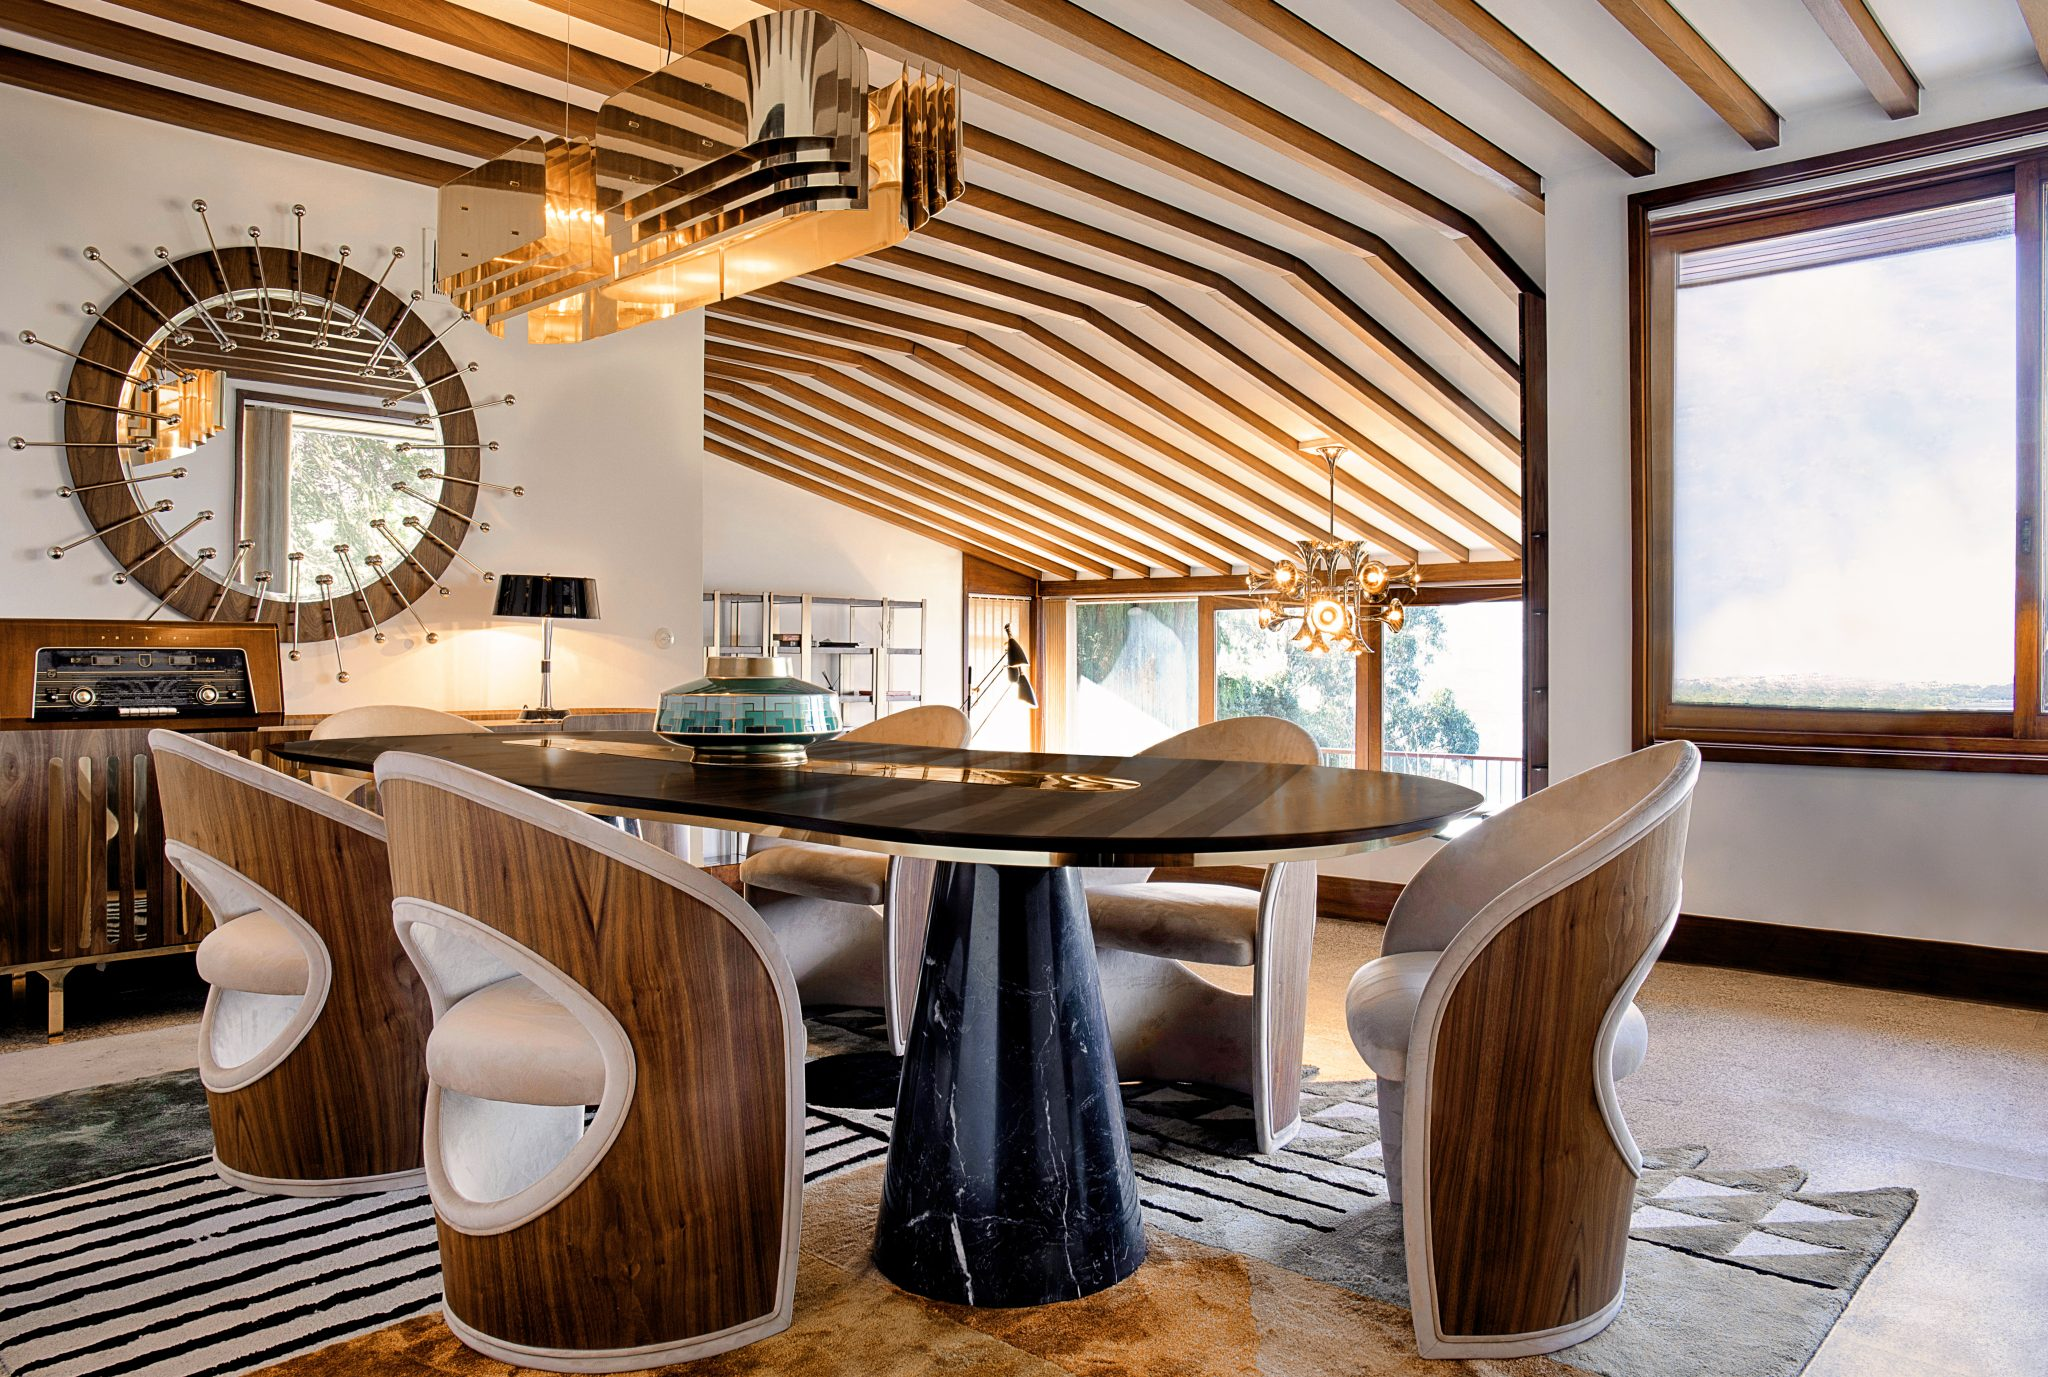 Exclusive Dining Room Decor Featuring The Mid-Century Modern Design